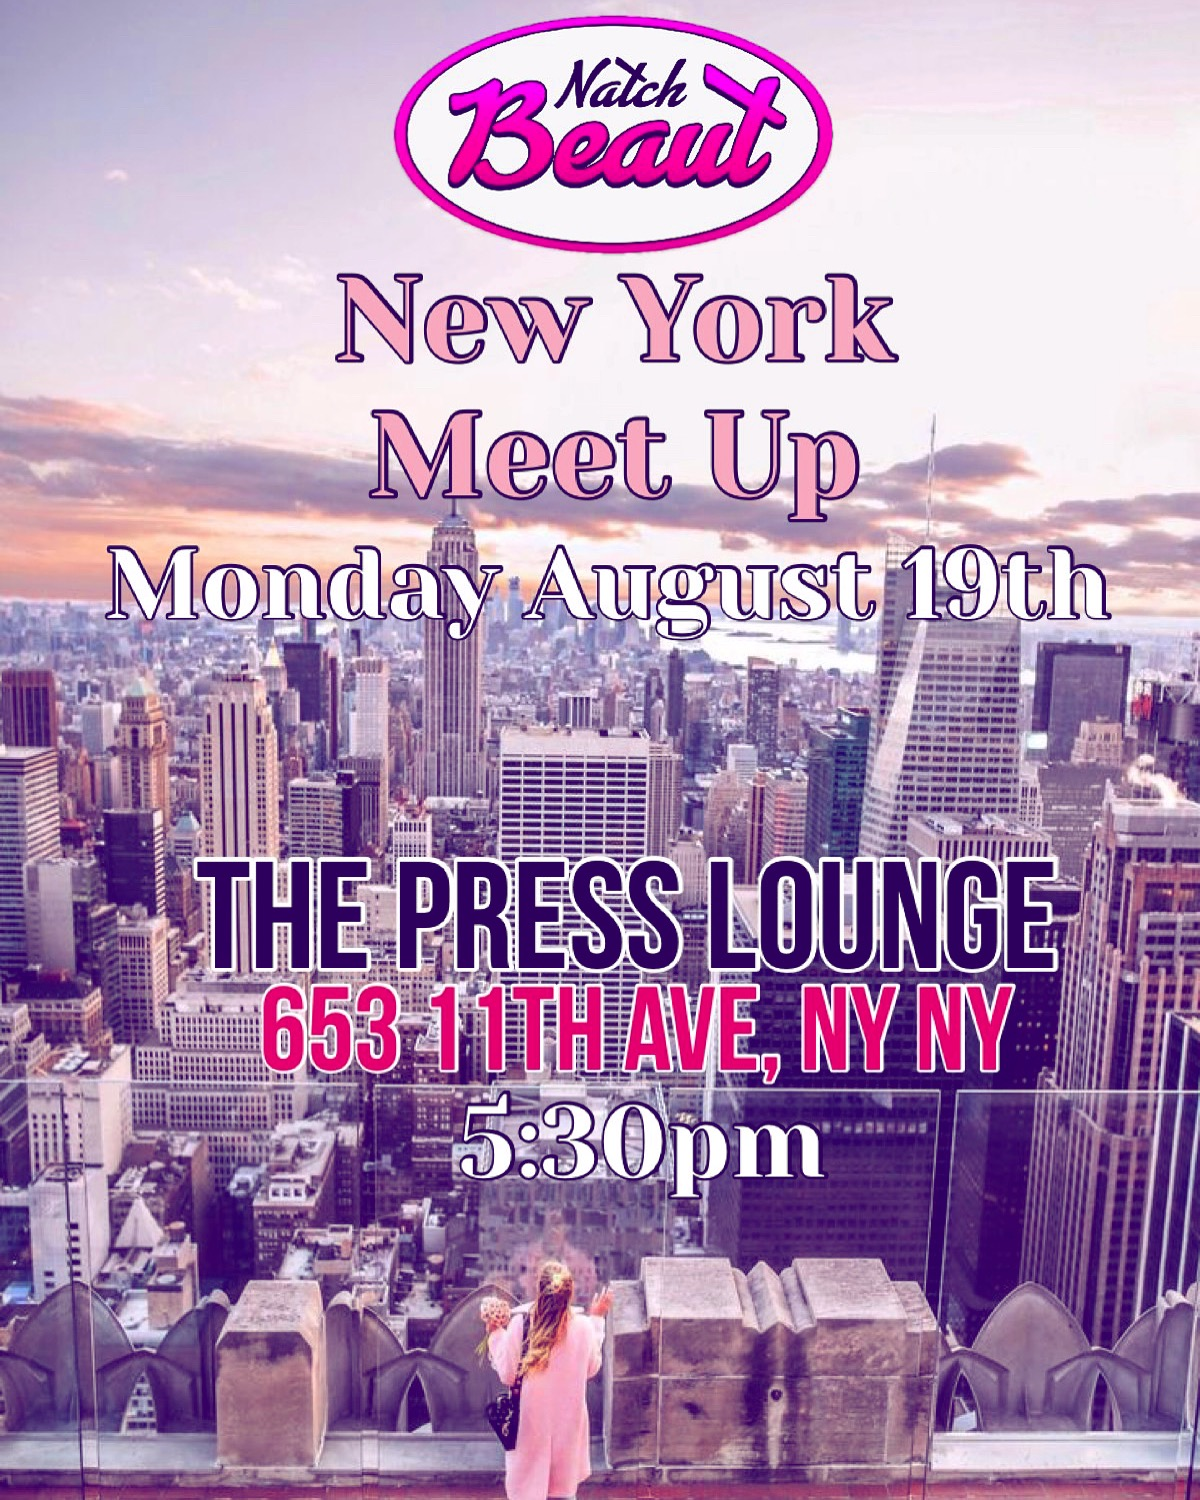 Natch Beaut NY Meet Up: Monday, August 19th, 2019 at the Press Lounge, 653 11th Ave at 5:30 PM